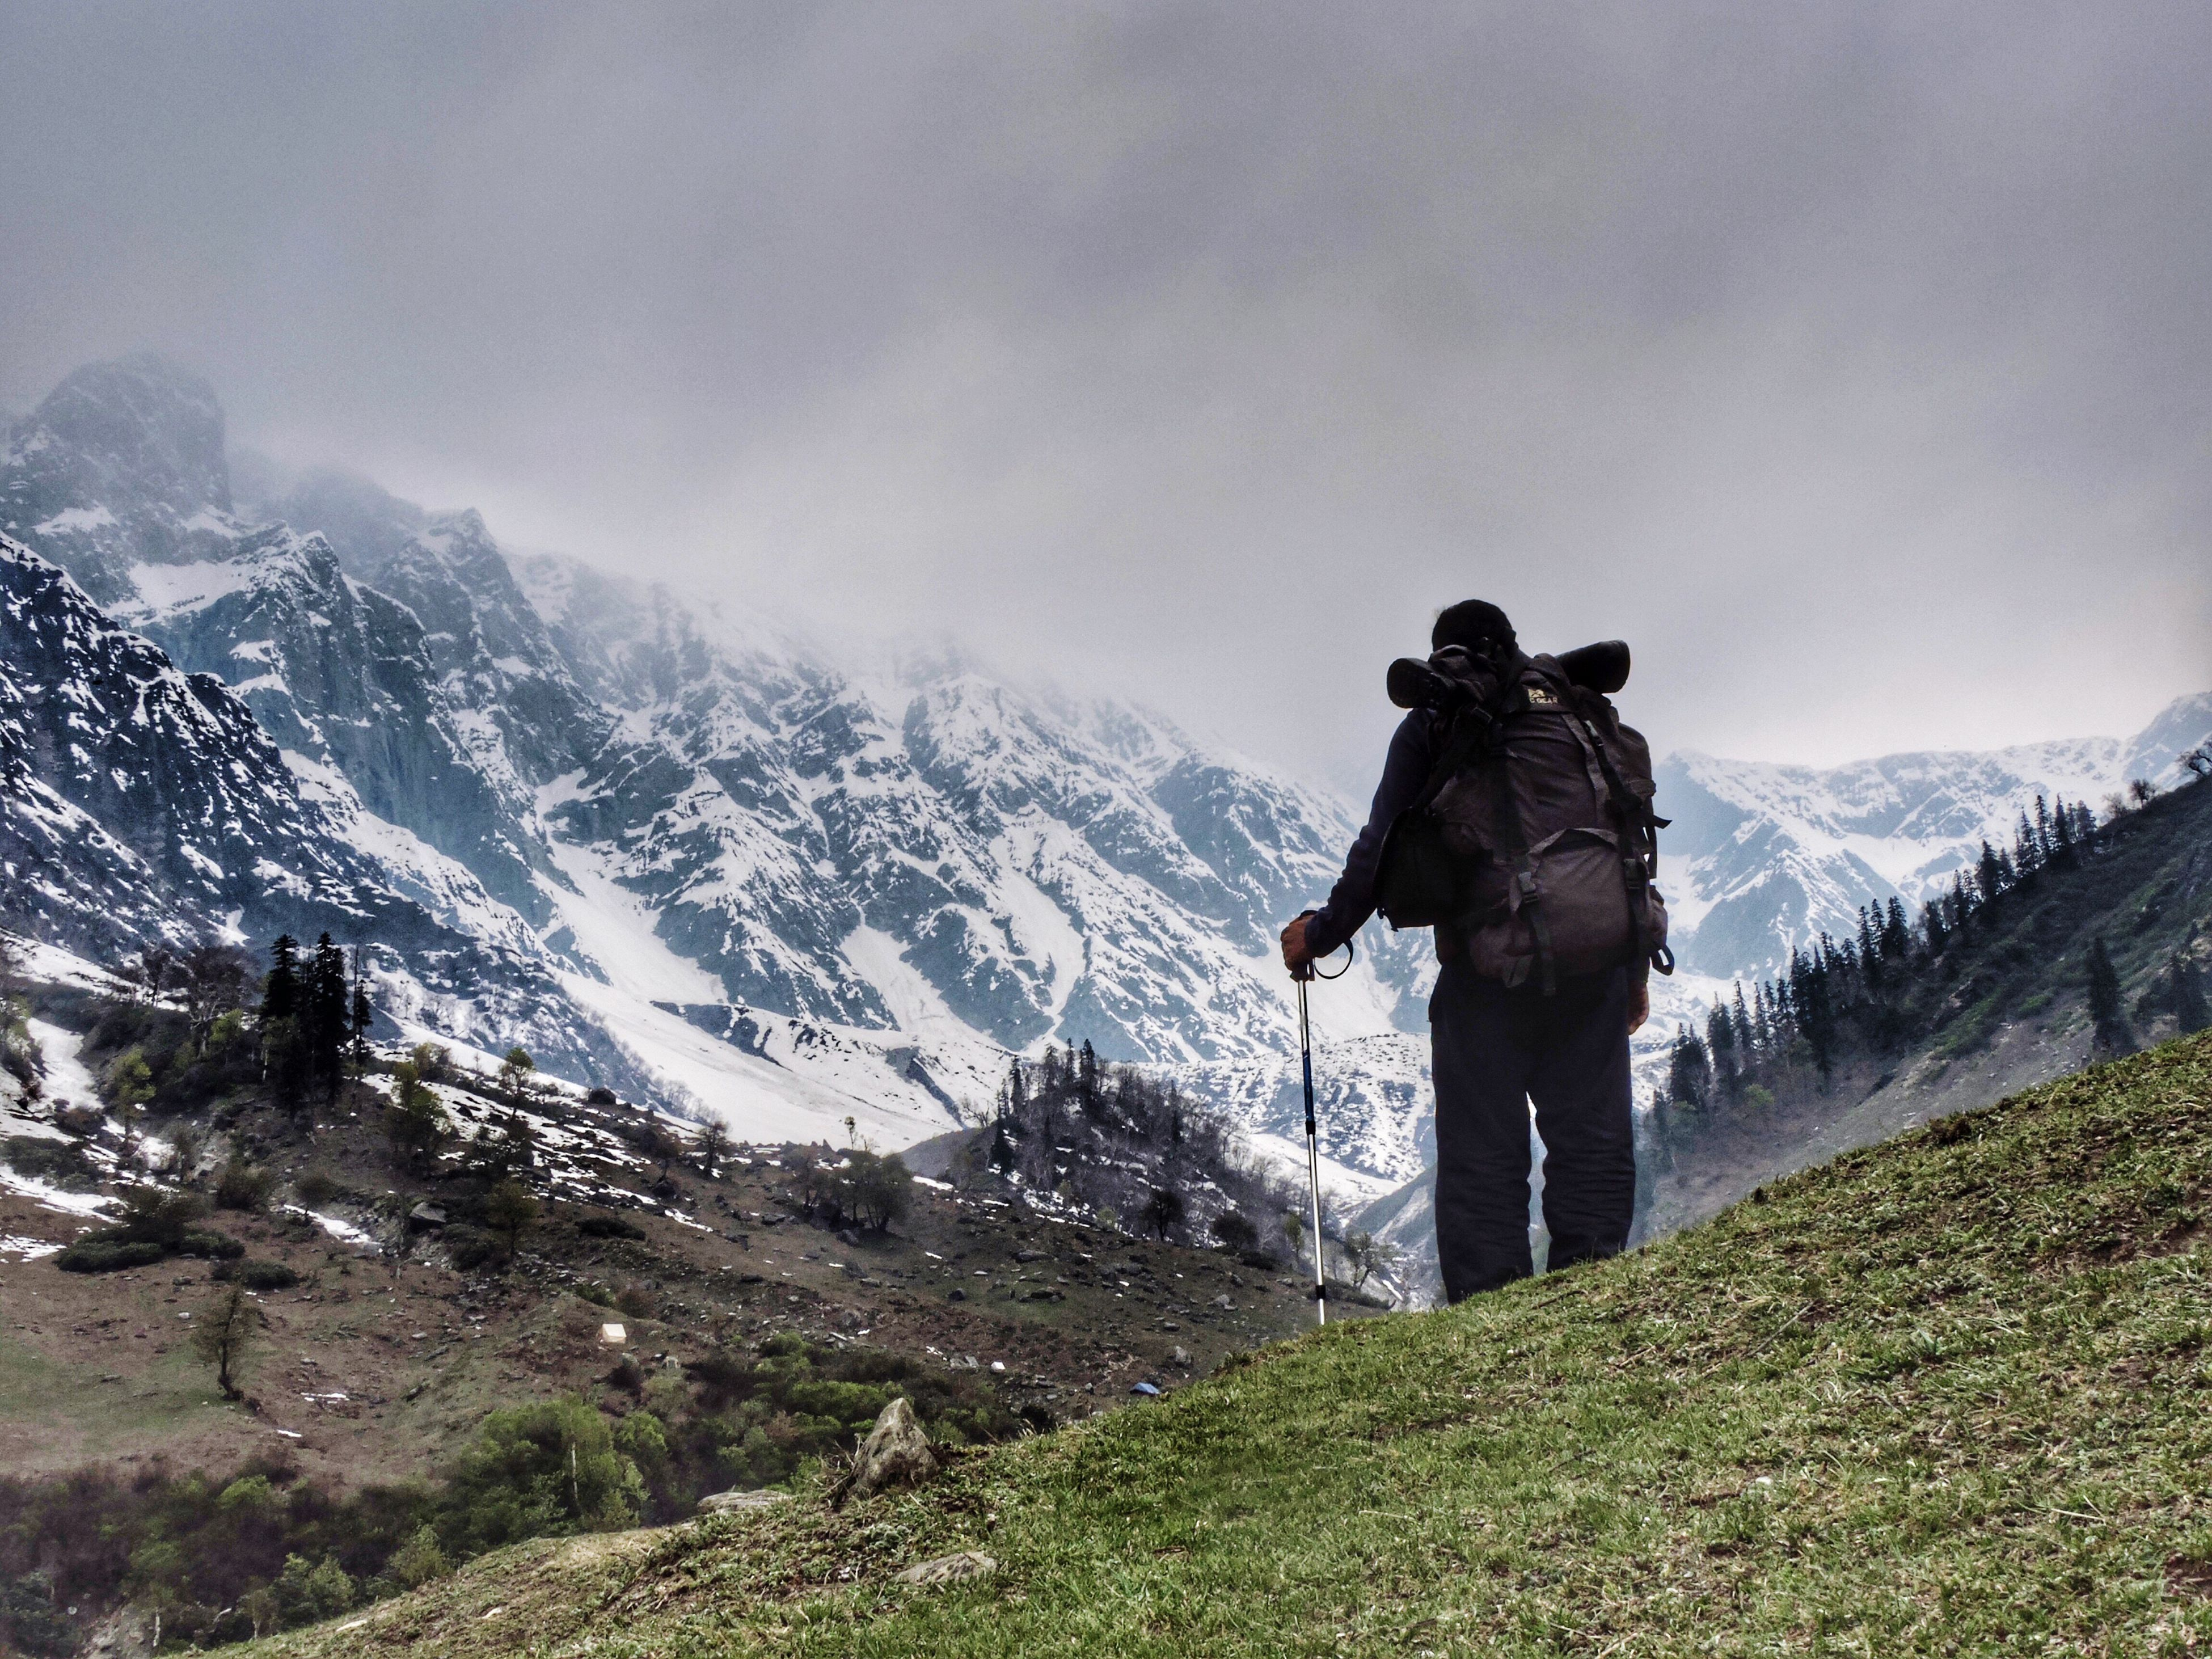 snow, winter, cold temperature, mountain, season, tranquil scene, weather, full length, snowcapped mountain, scenics, mountain range, tranquility, beauty in nature, men, rear view, sky, non-urban scene, nature, adventure, vacations, tourism, mountain peak, outdoors, day